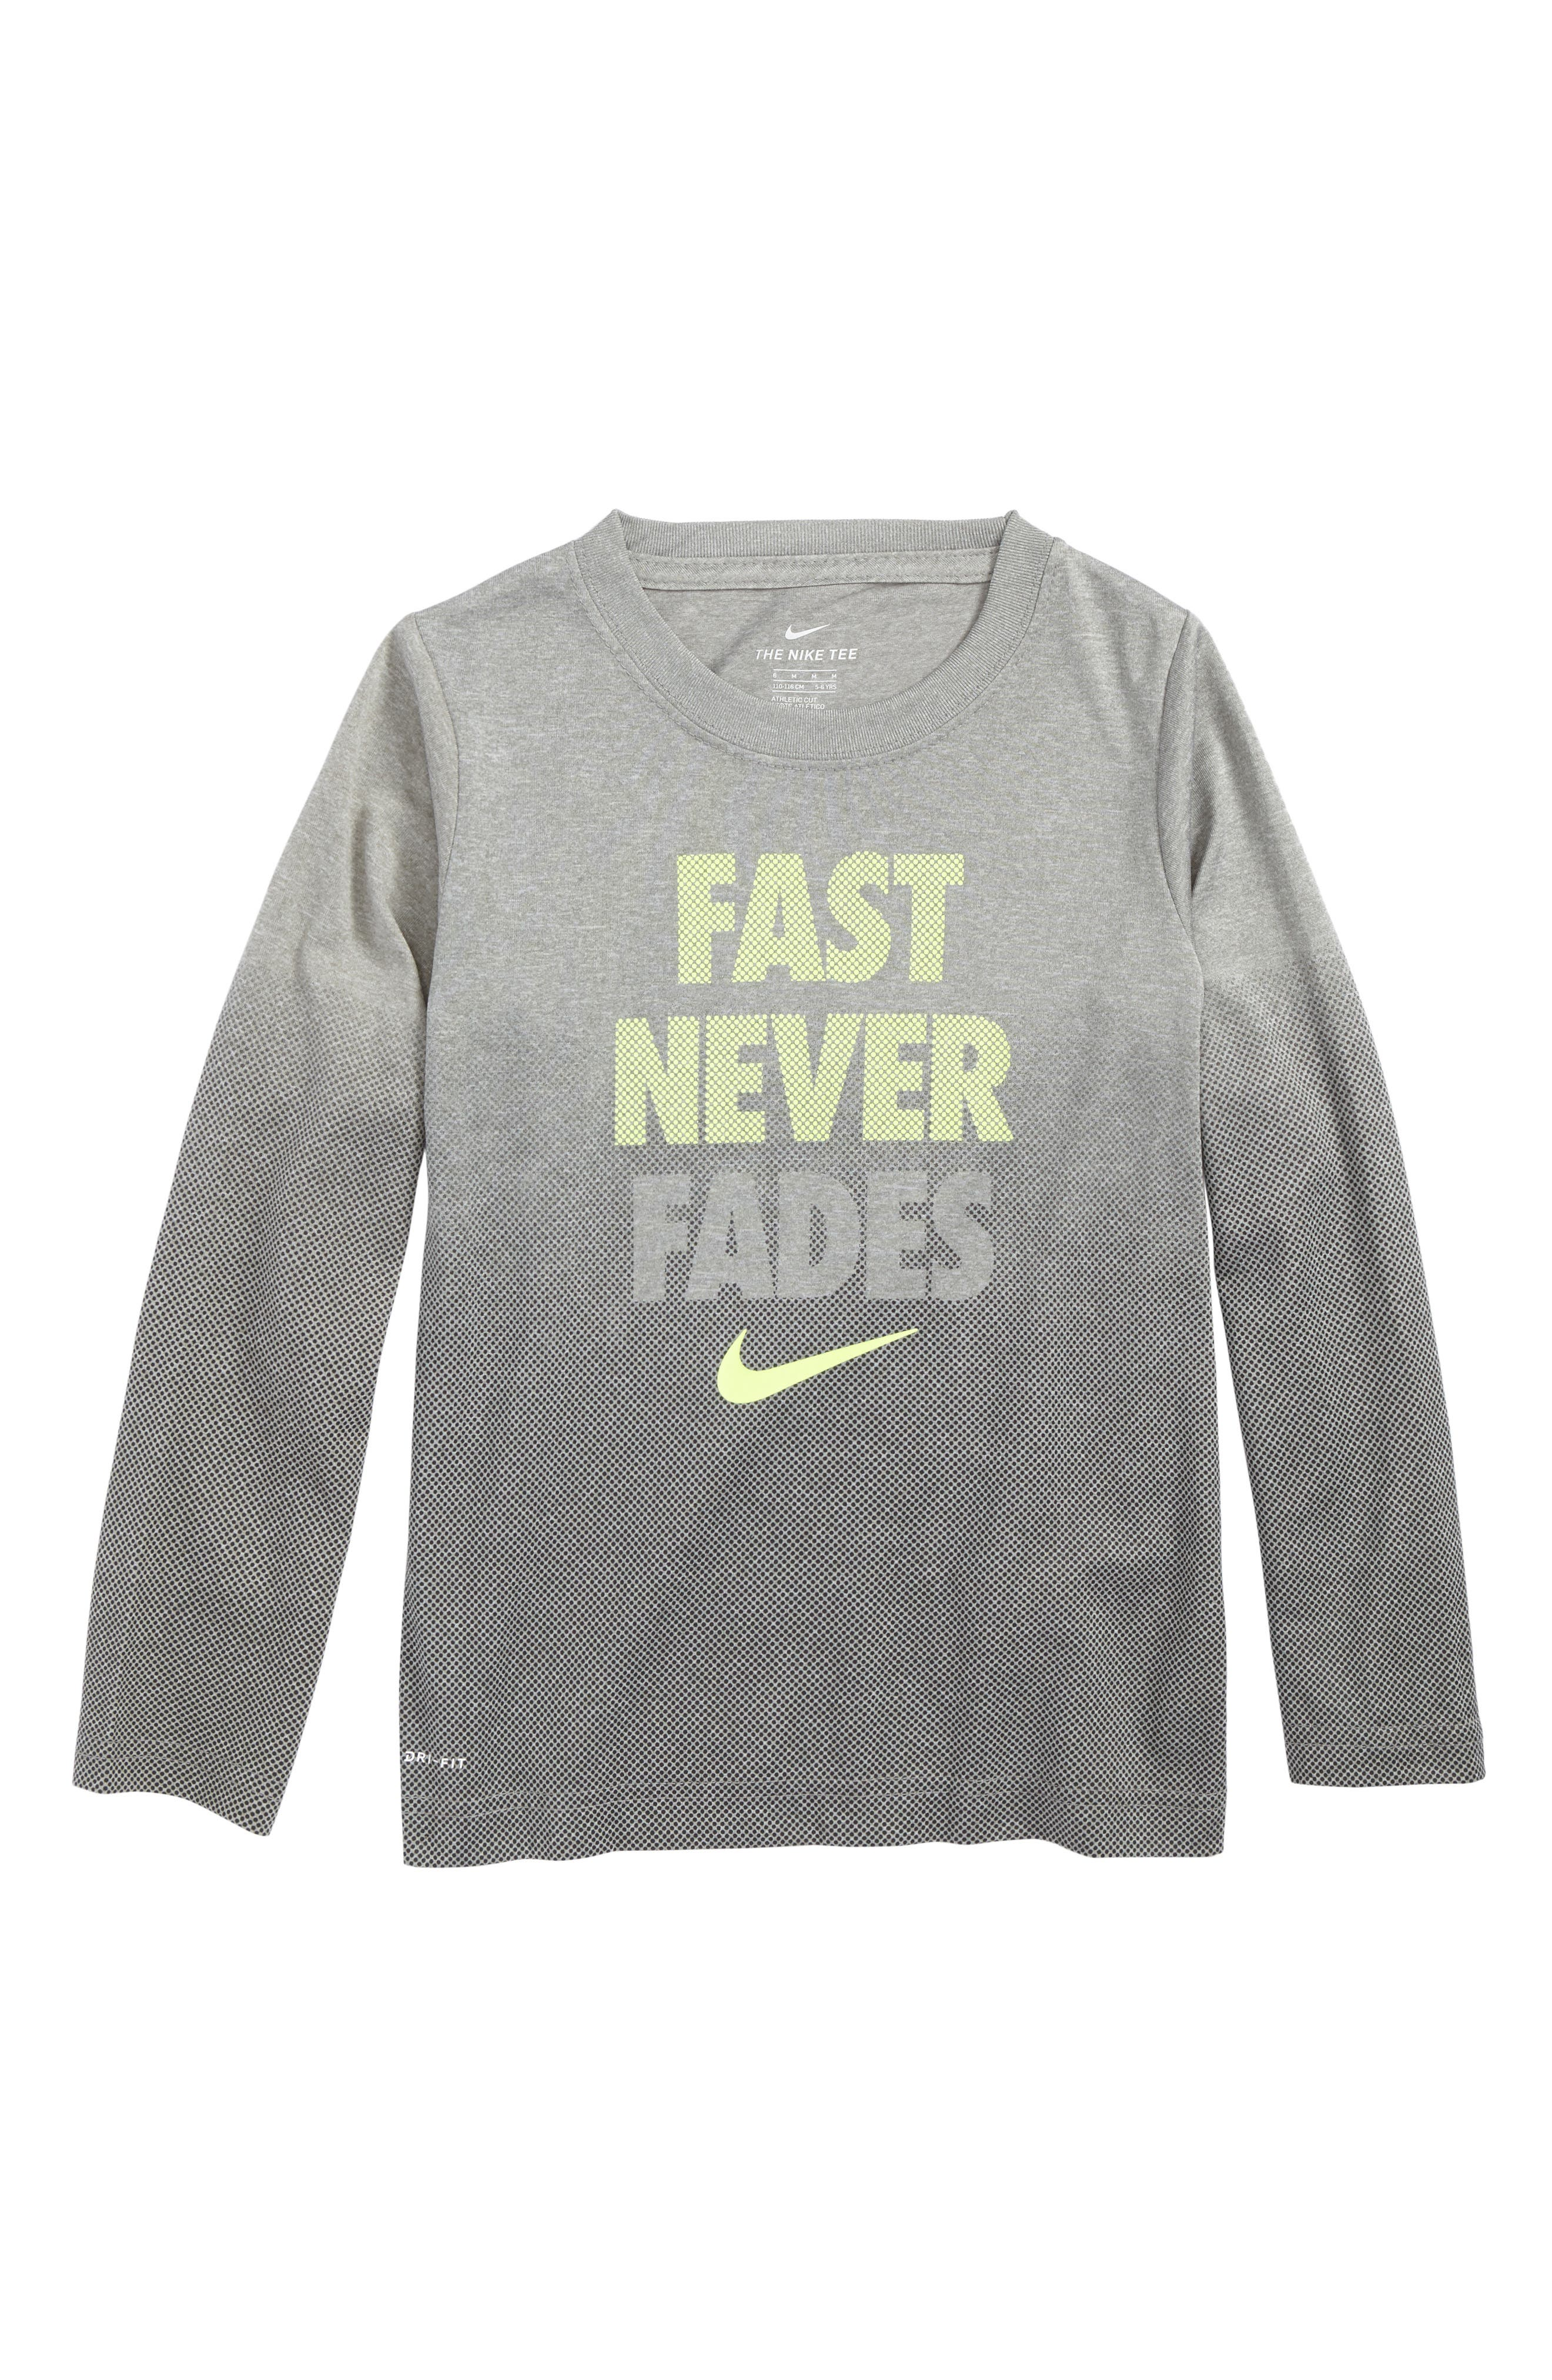 Fast Never Fades Long Sleeve T-Shirt,                         Main,                         color, 088